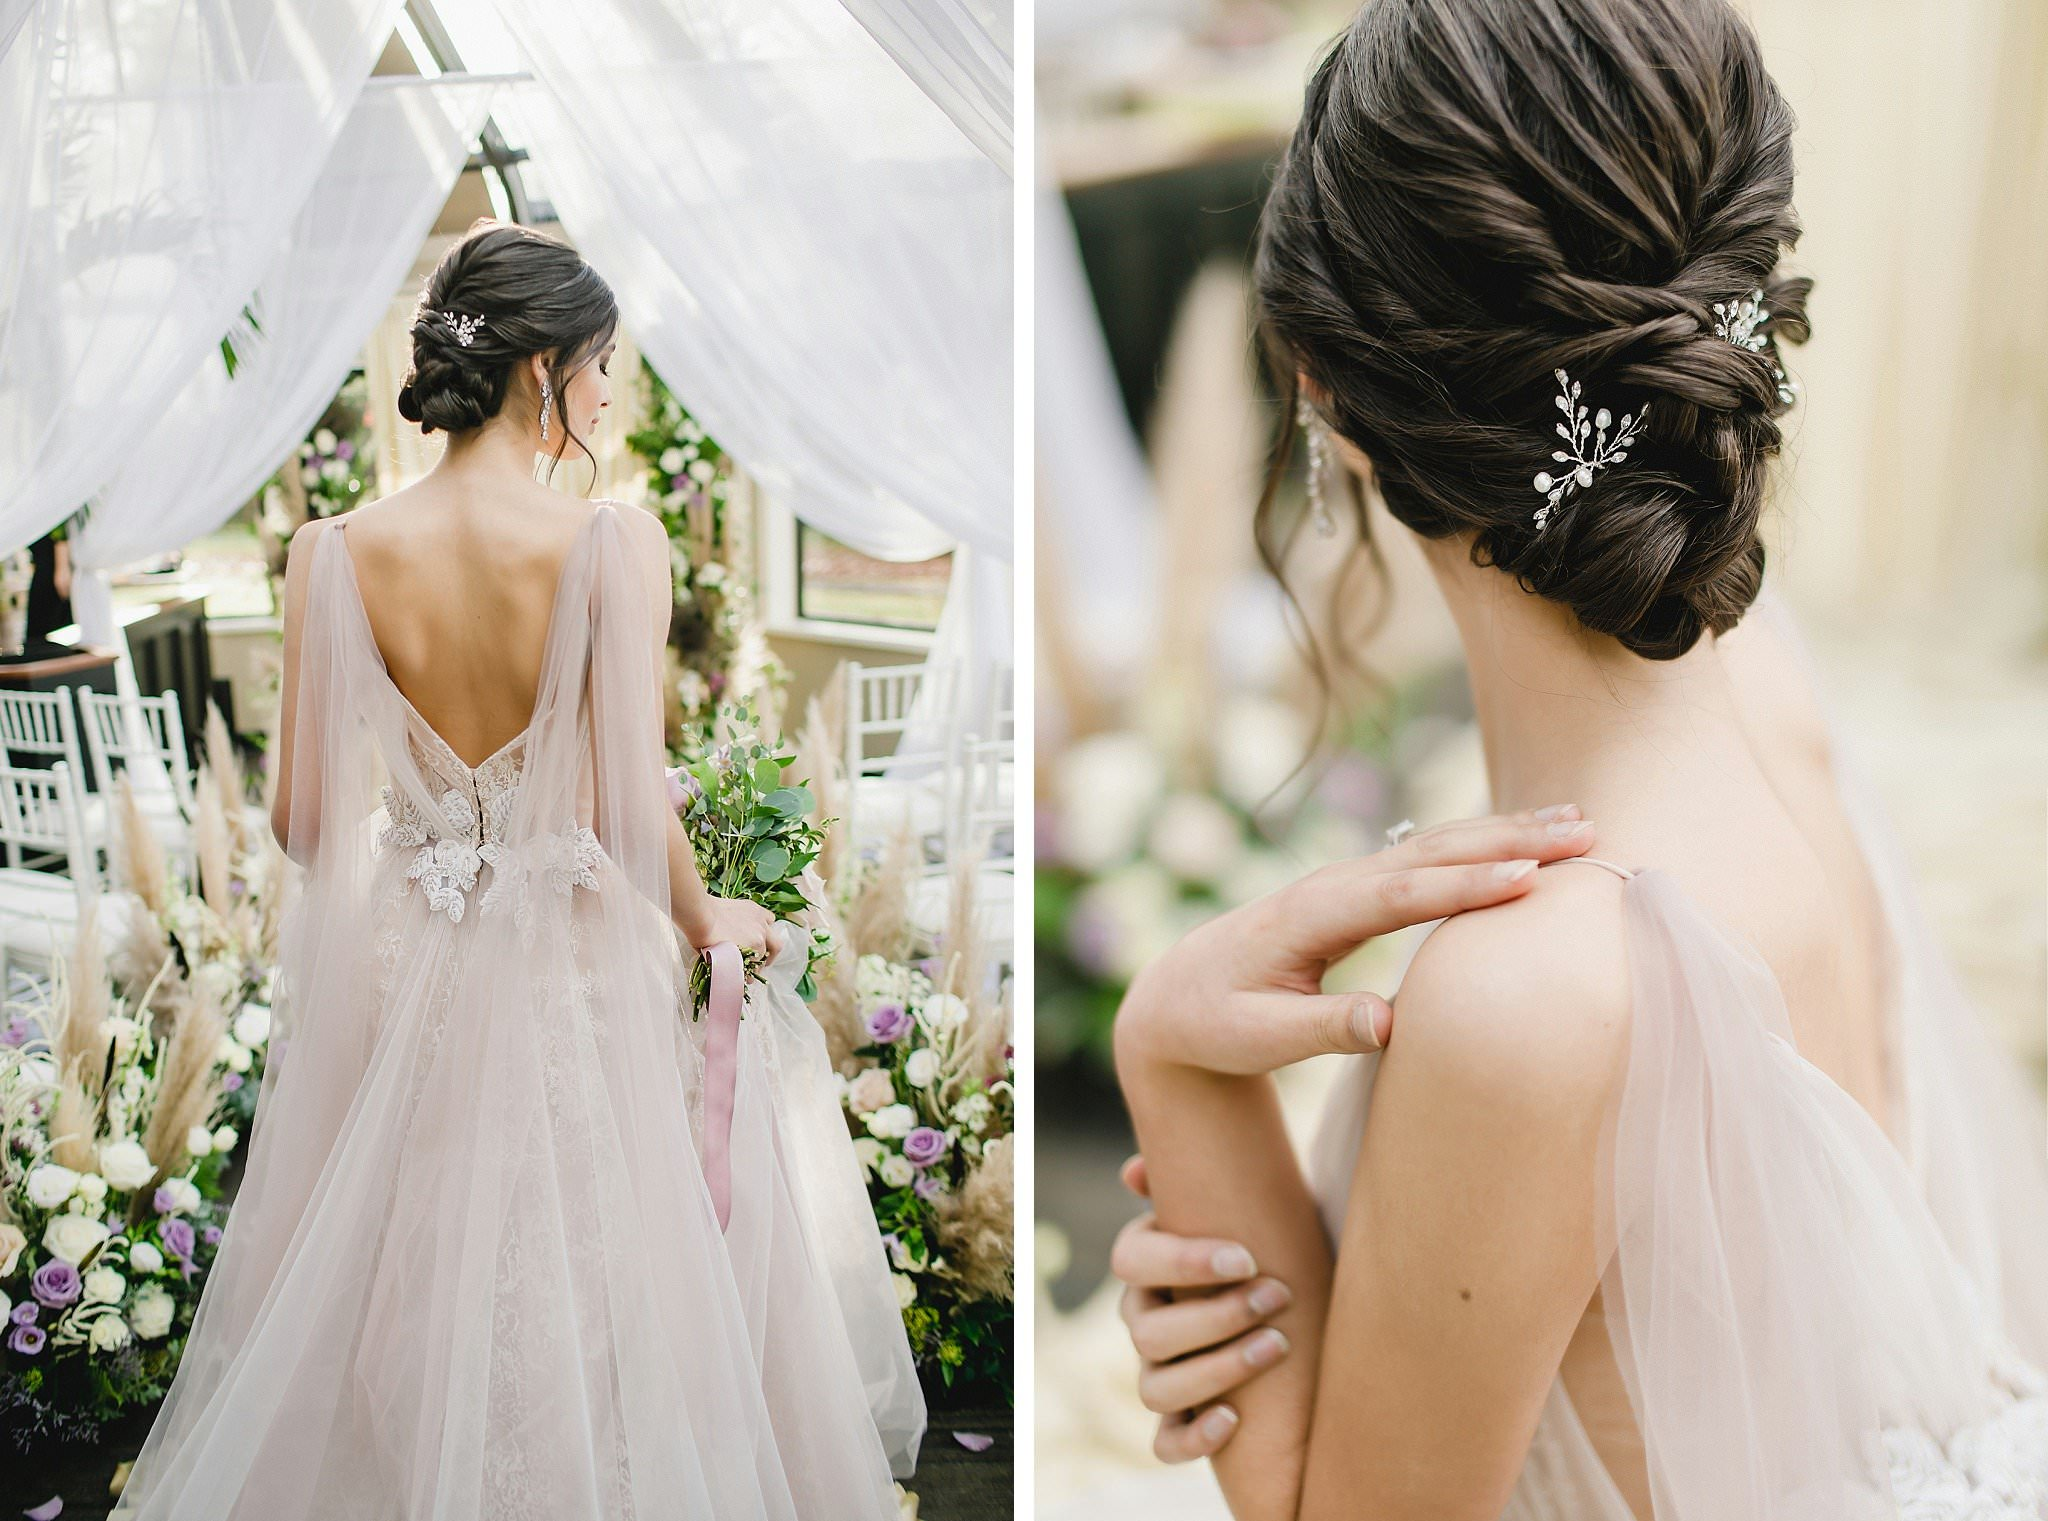 WedLuxe Styled Shoot Vancouver wedding dress details